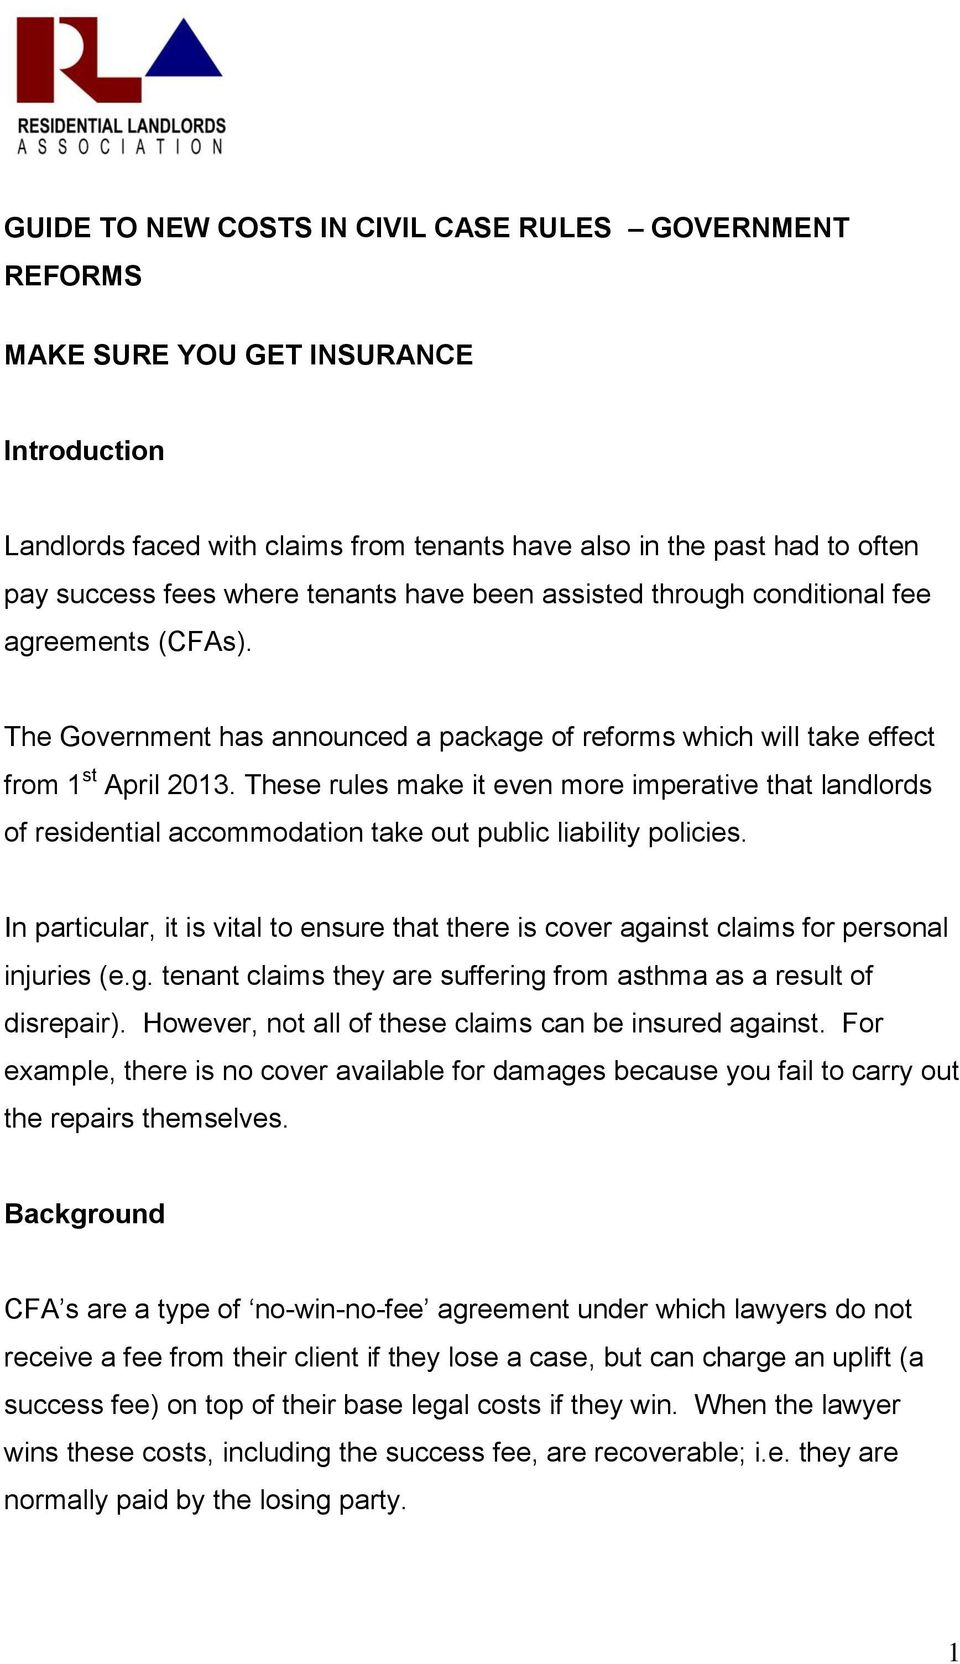 These rules make it even more imperative that landlords of residential accommodation take out public liability policies.